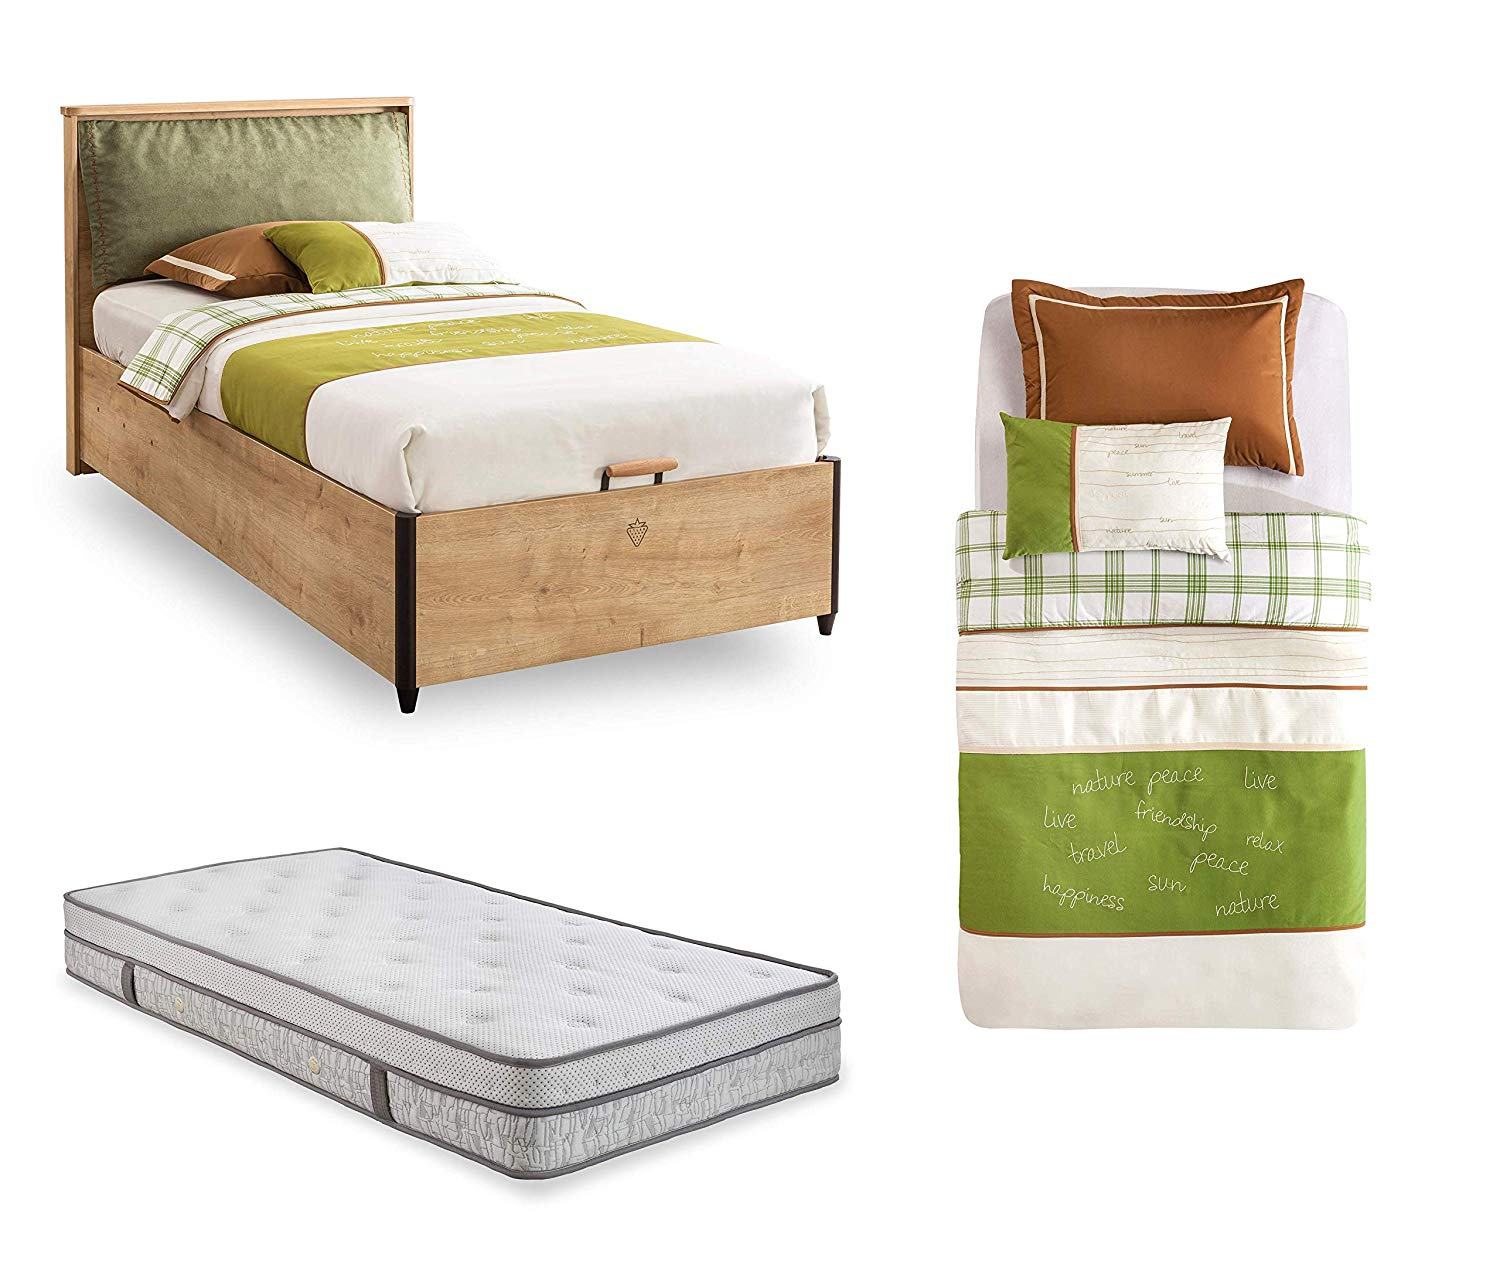 Complete Single Bedroom Bed For Boy Or Child Headboard With Upholstered Fabric Cushion Dafne Italian Design